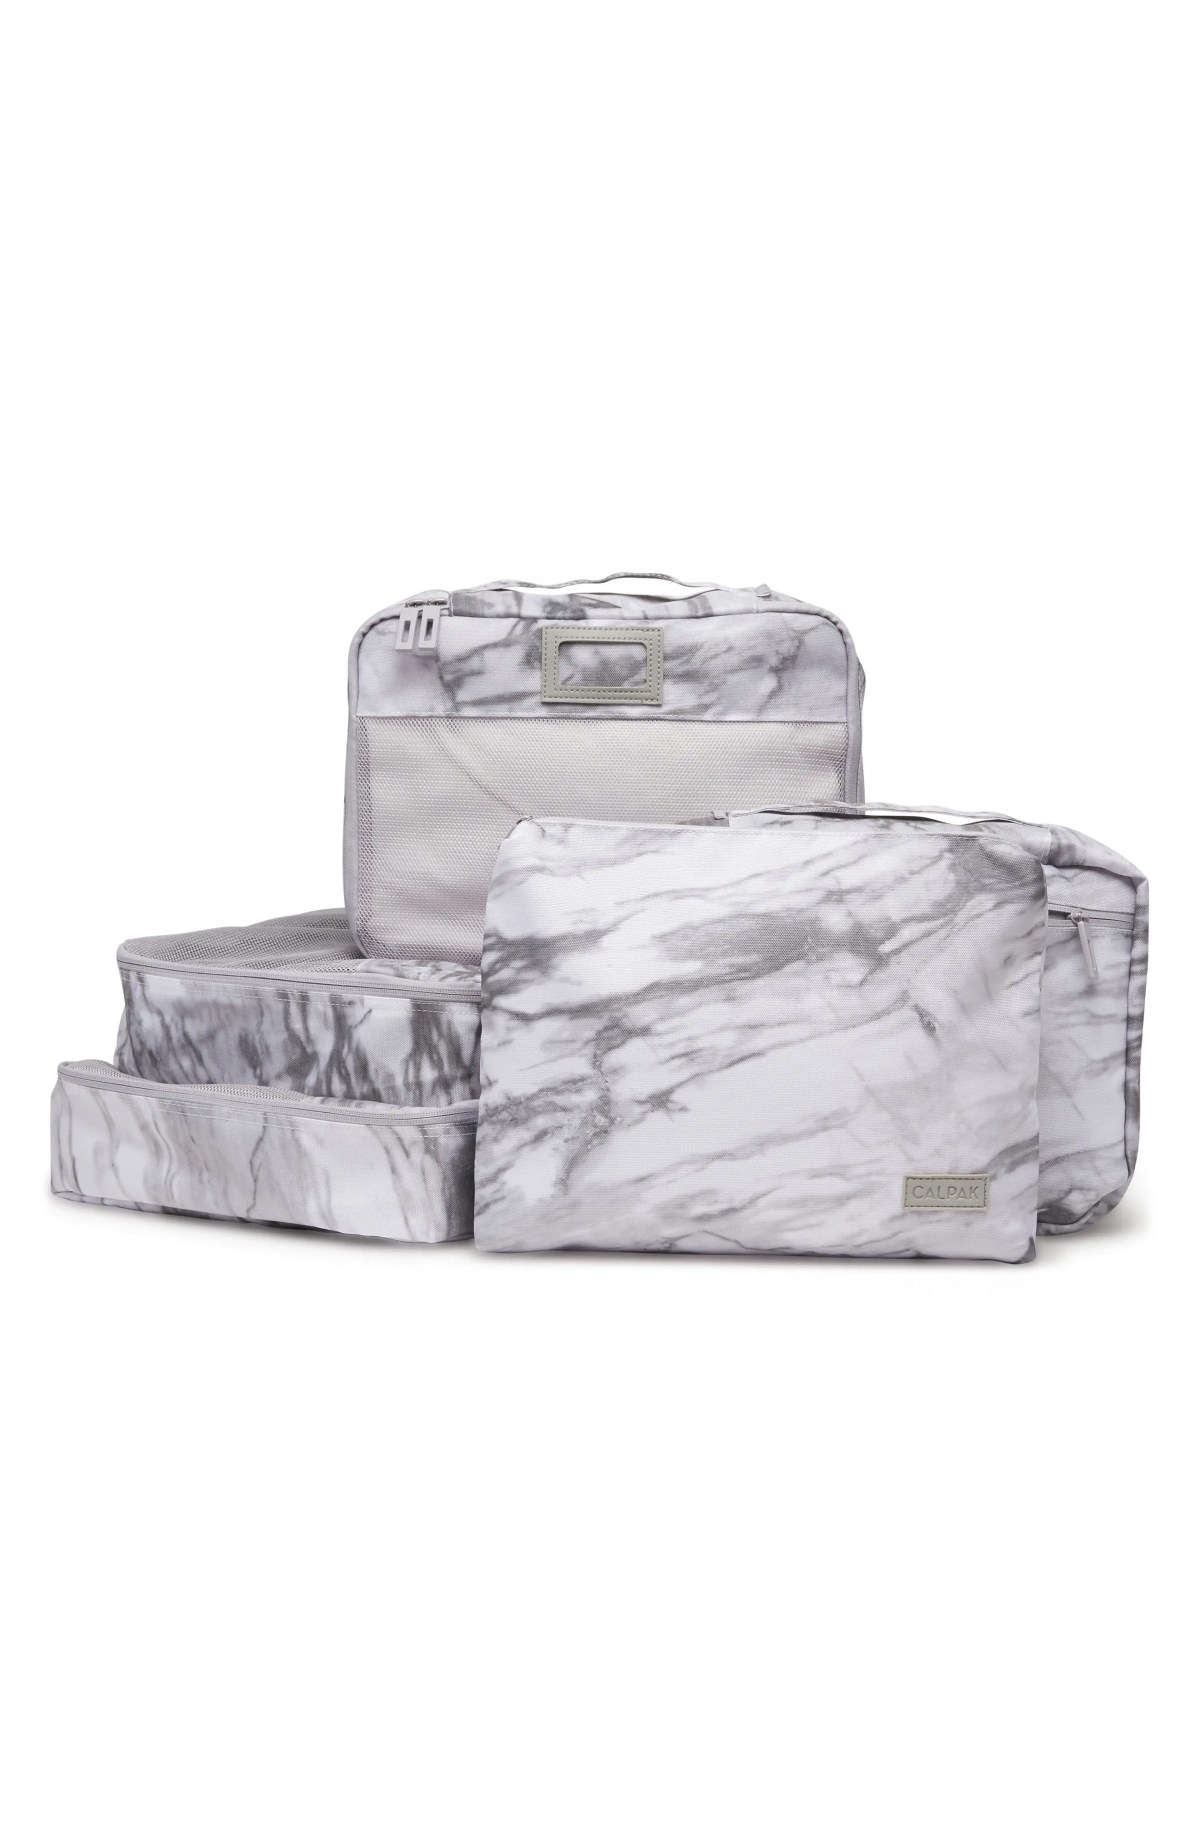 CALPAK 5-Piece Packing Cube Set, Main, color, MILK MARBLE